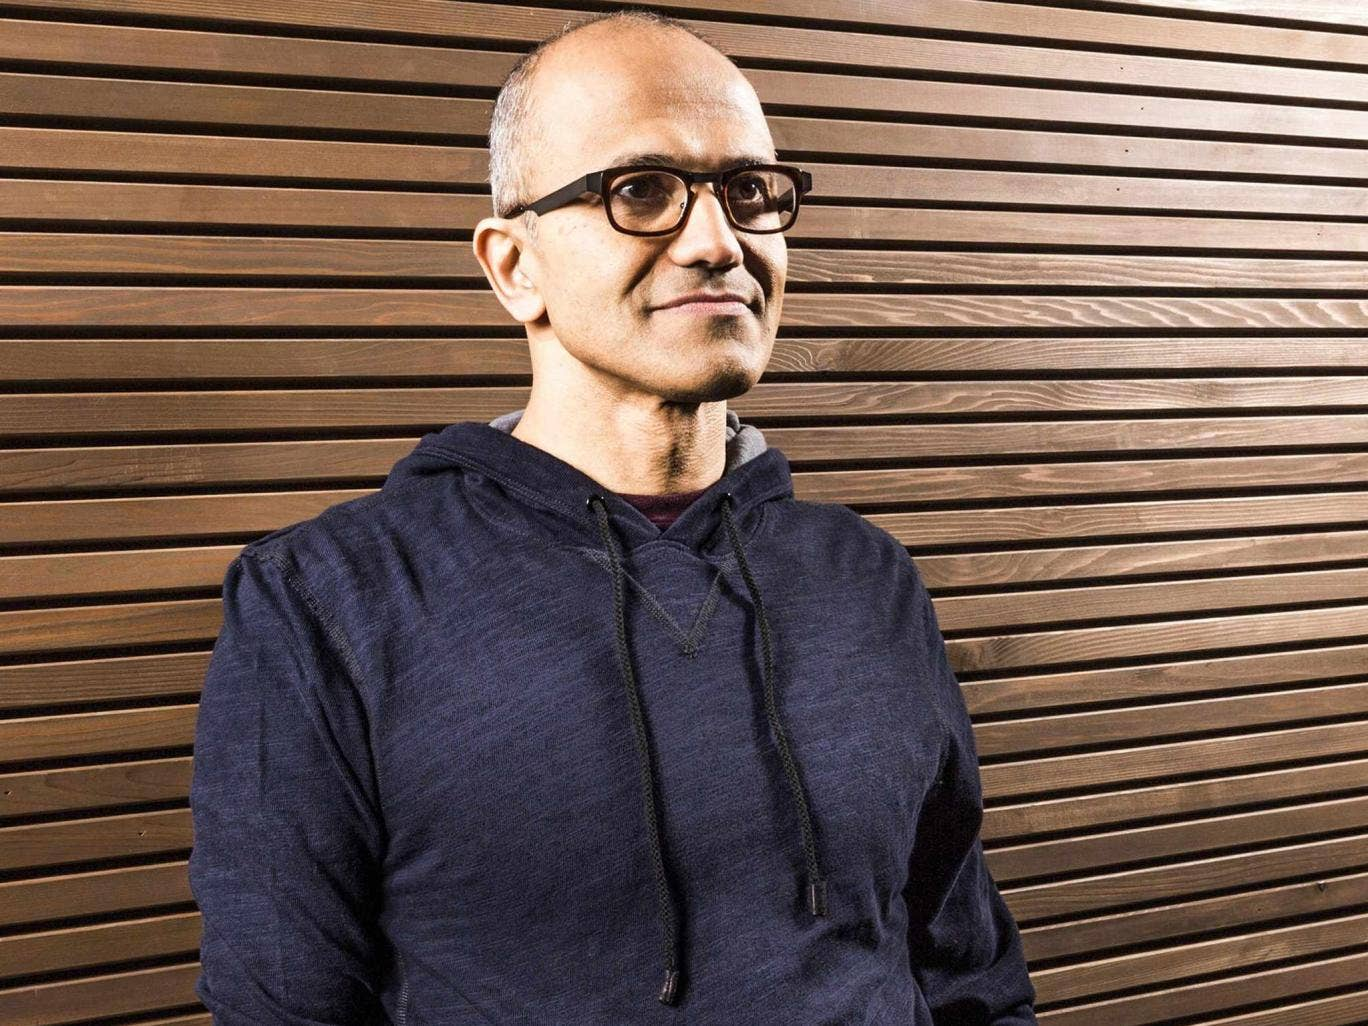 Satya Nadella said he learned much of his managerial style from playing cricket as a schoolboy in India